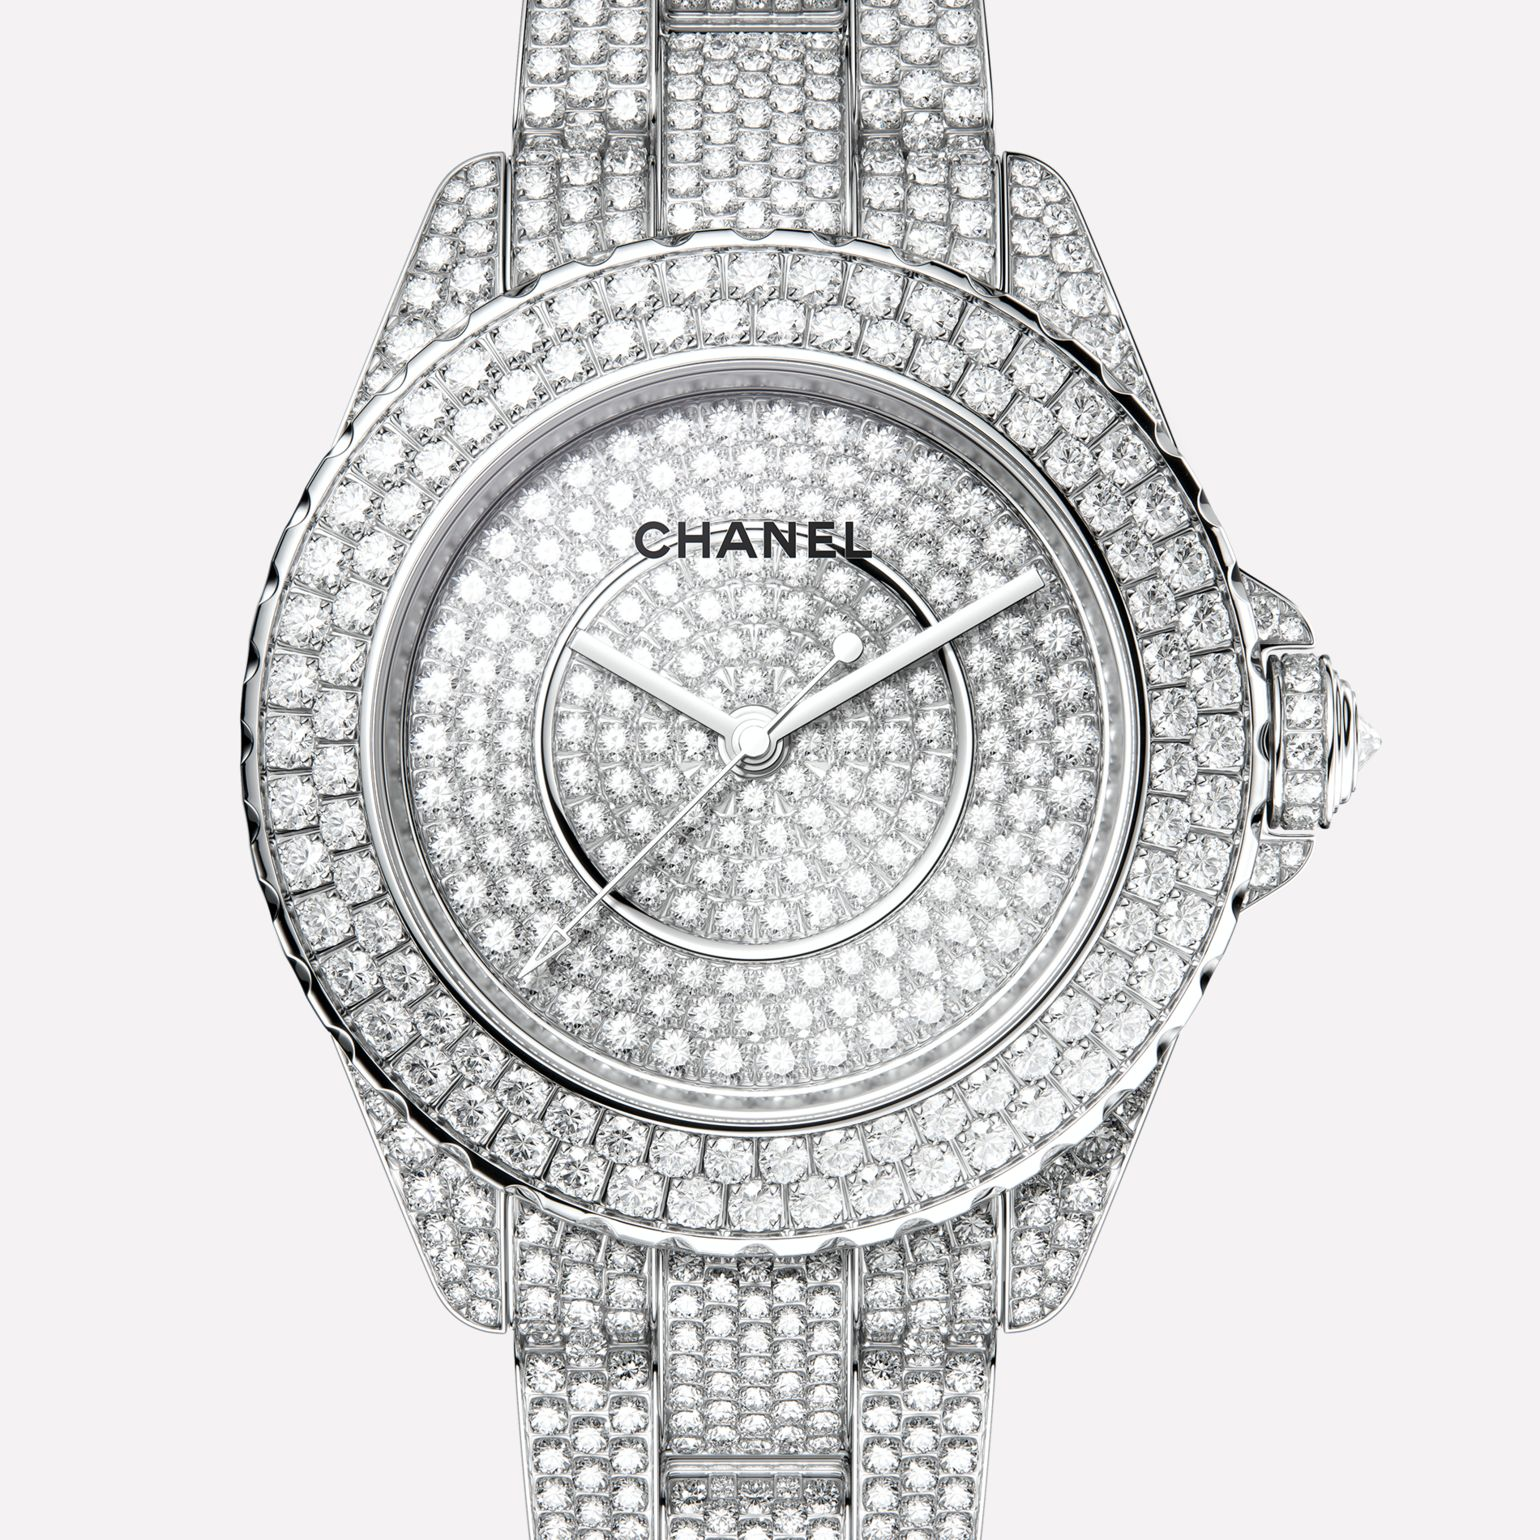 J12 Watch 18K white gold case, dial, bezel, crown and bracelet set with brilliant-cut diamonds